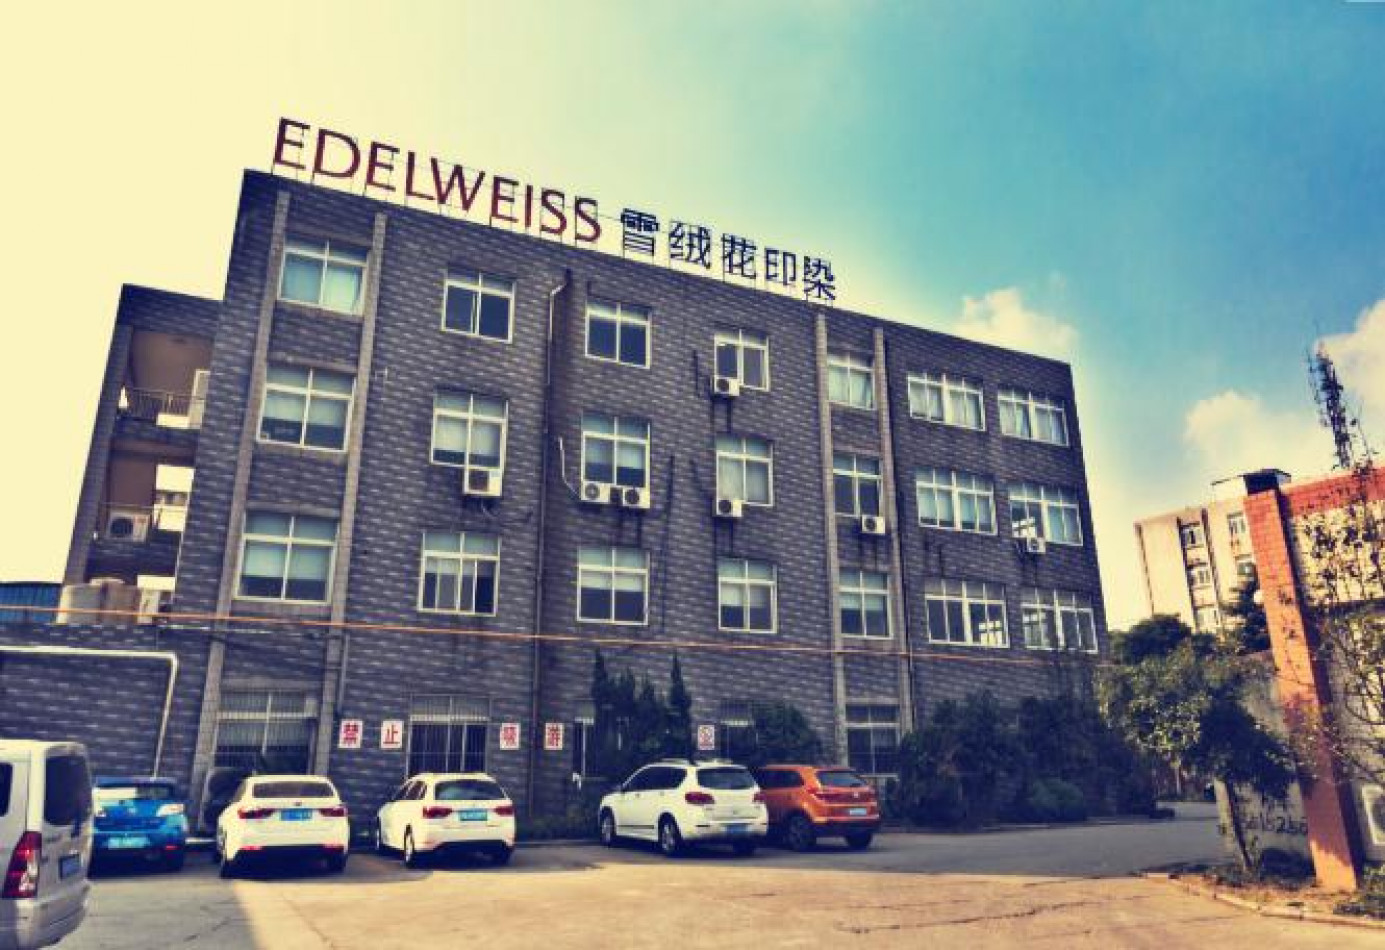 Changzhou Edelweiss Printing & Dyeing Co., Ltd.